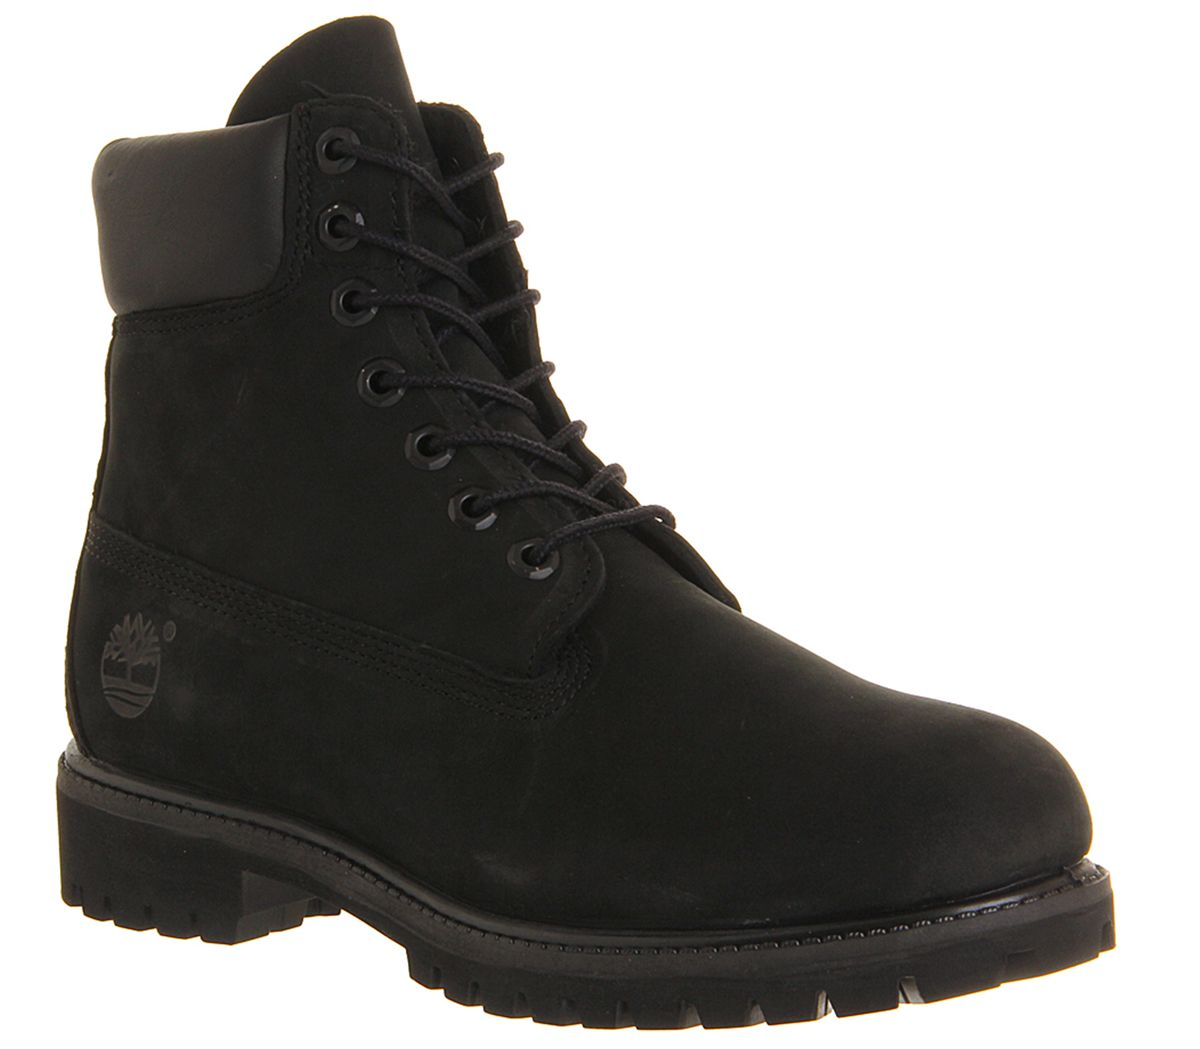 a987c82cd98 6 Inch Buck Boots